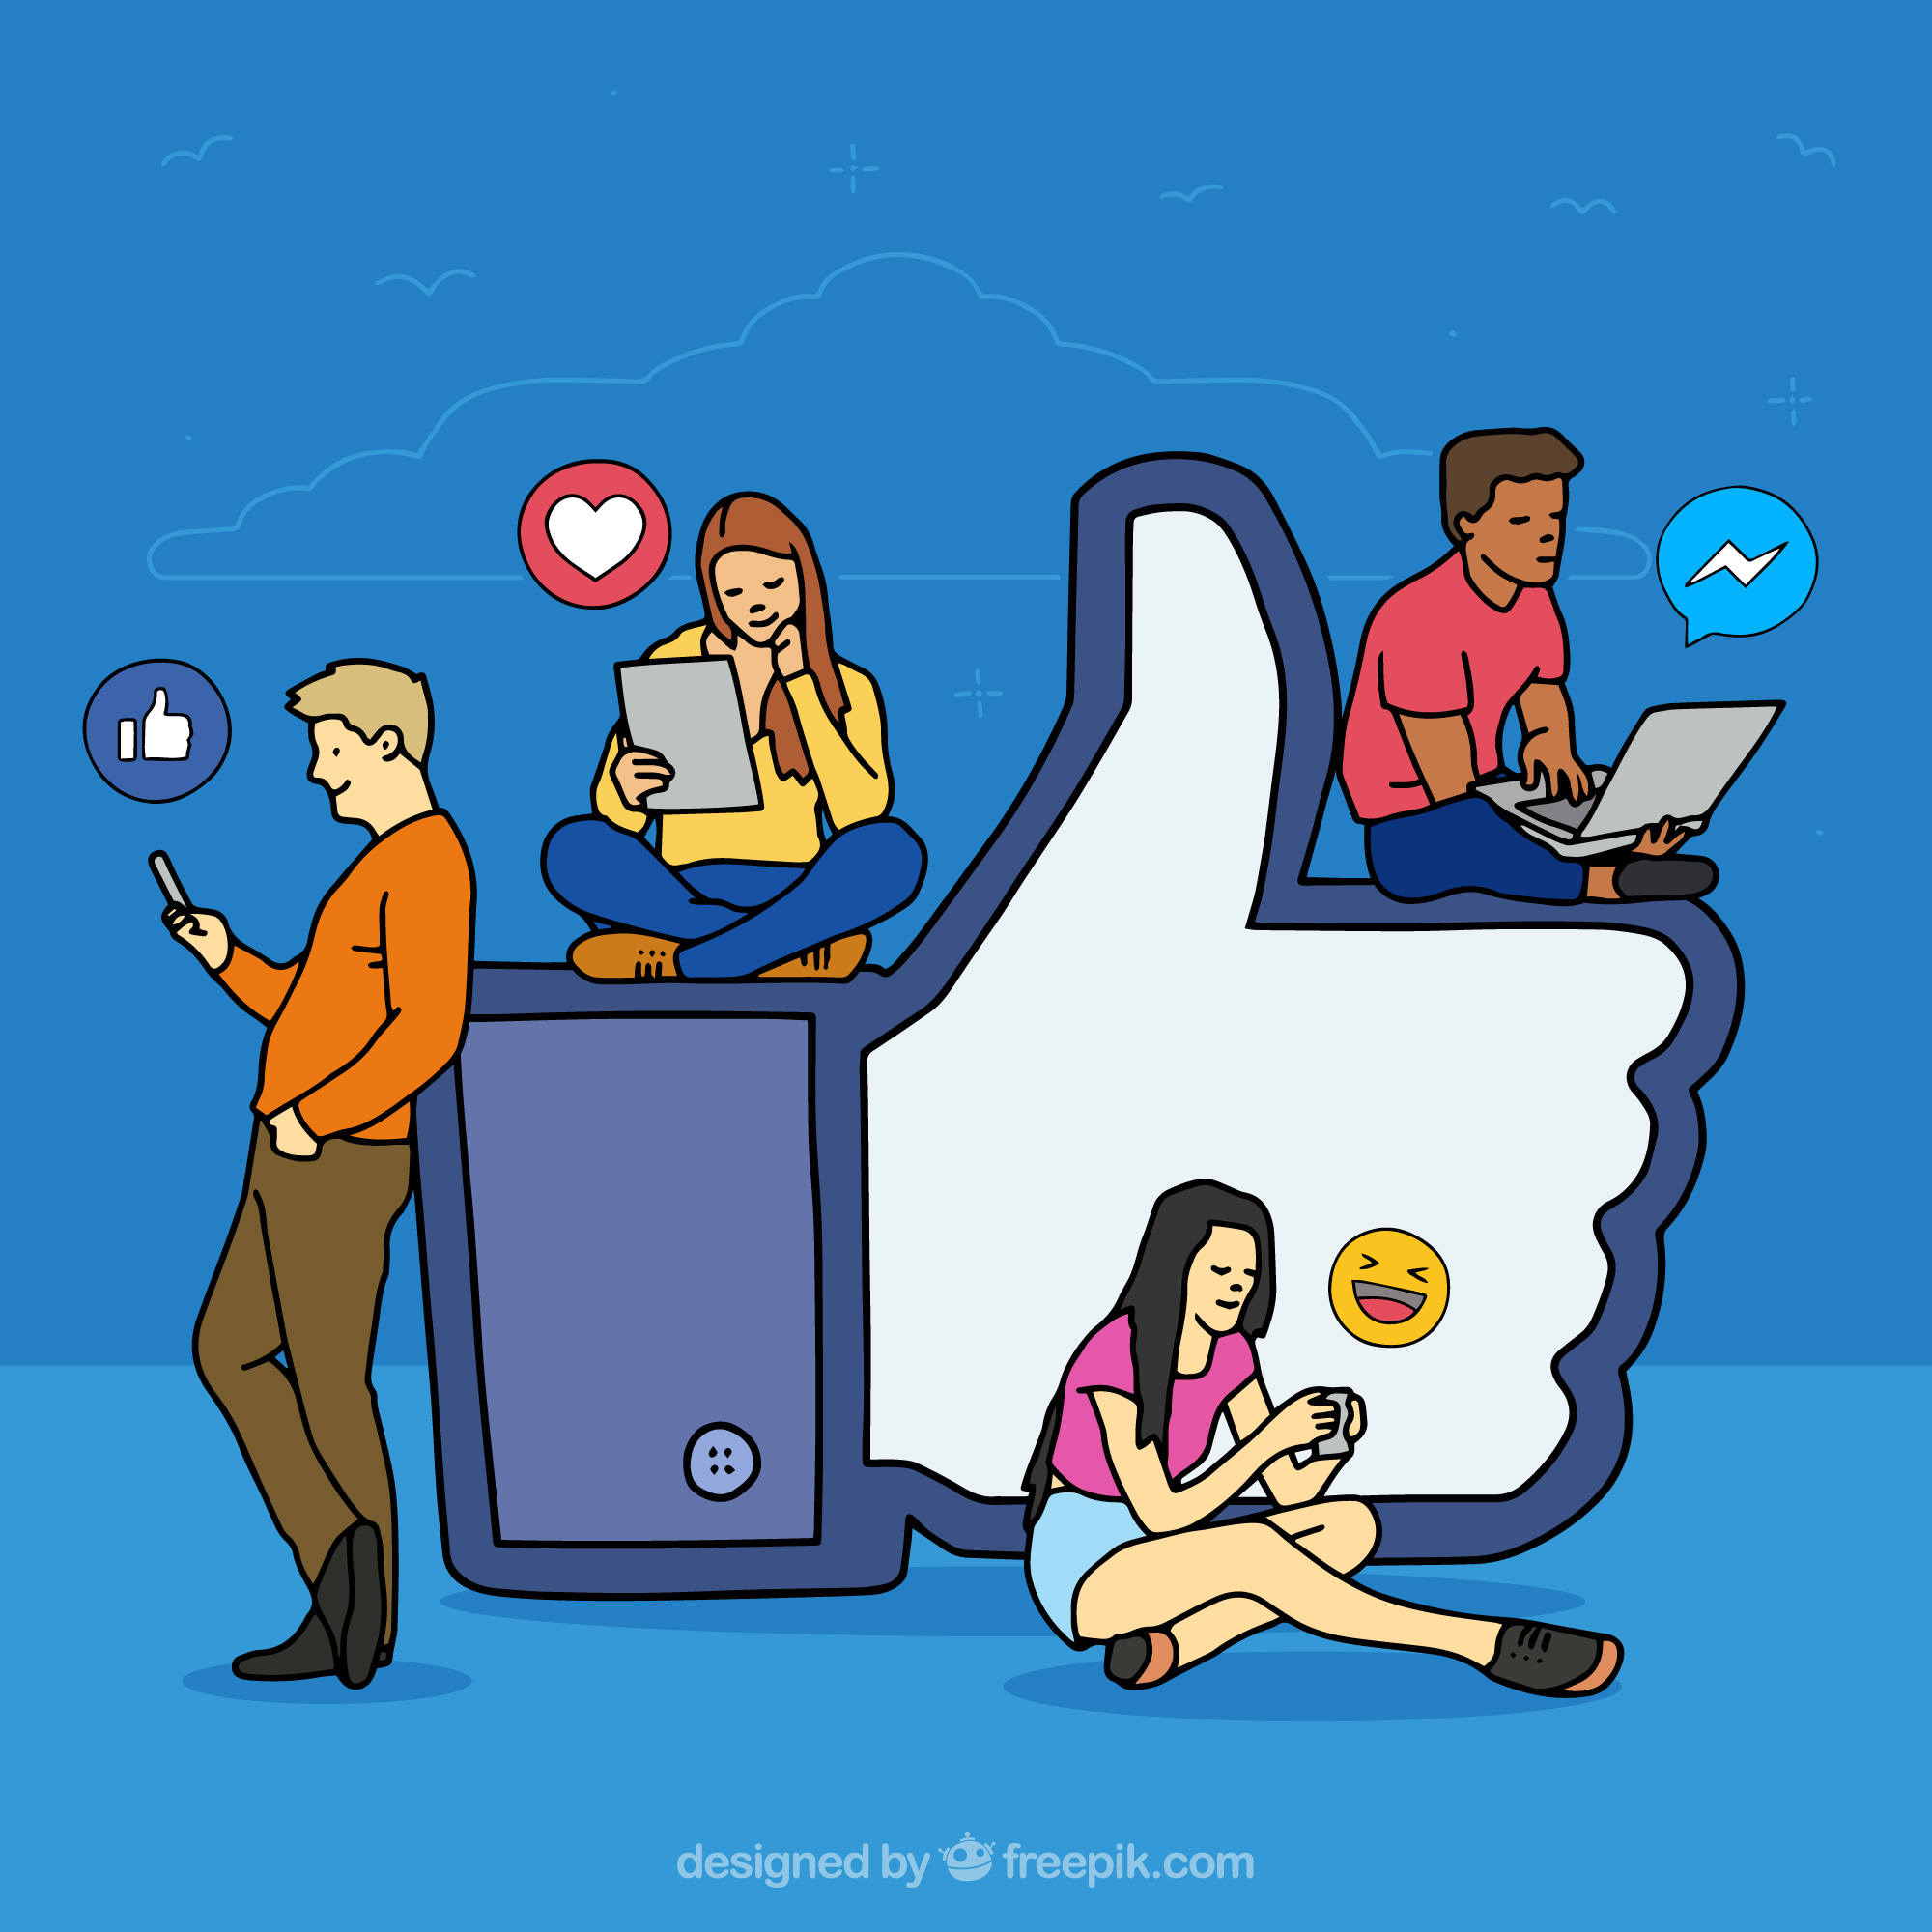 Facebook marketing tools to increase your engagement